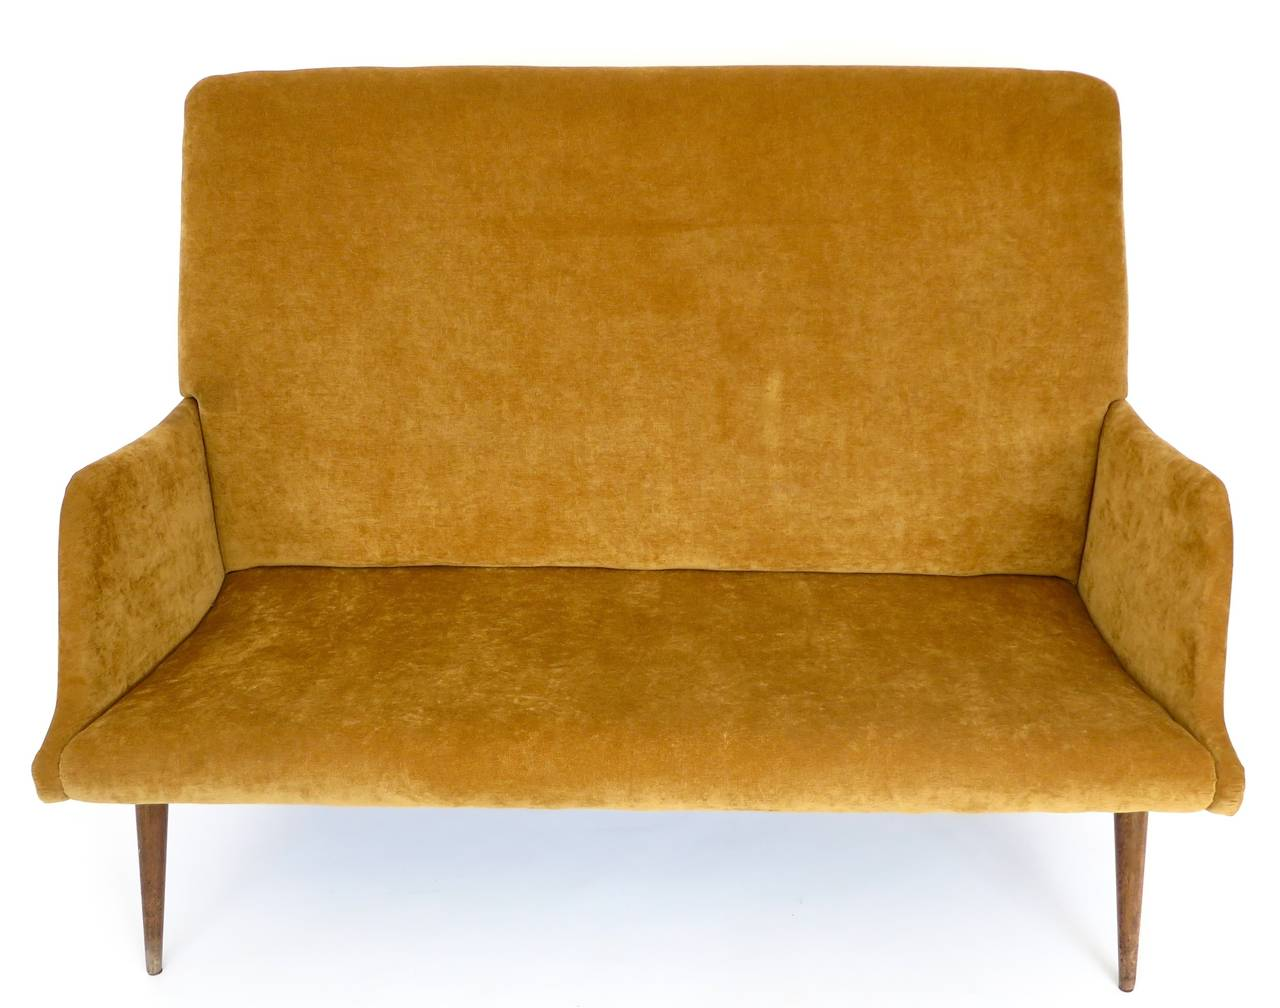 A high back settee by Italian designer, Carlo di Carli in the original upholstery in excellent condition with mahogany legs. Ready for new upholstery or use as is.